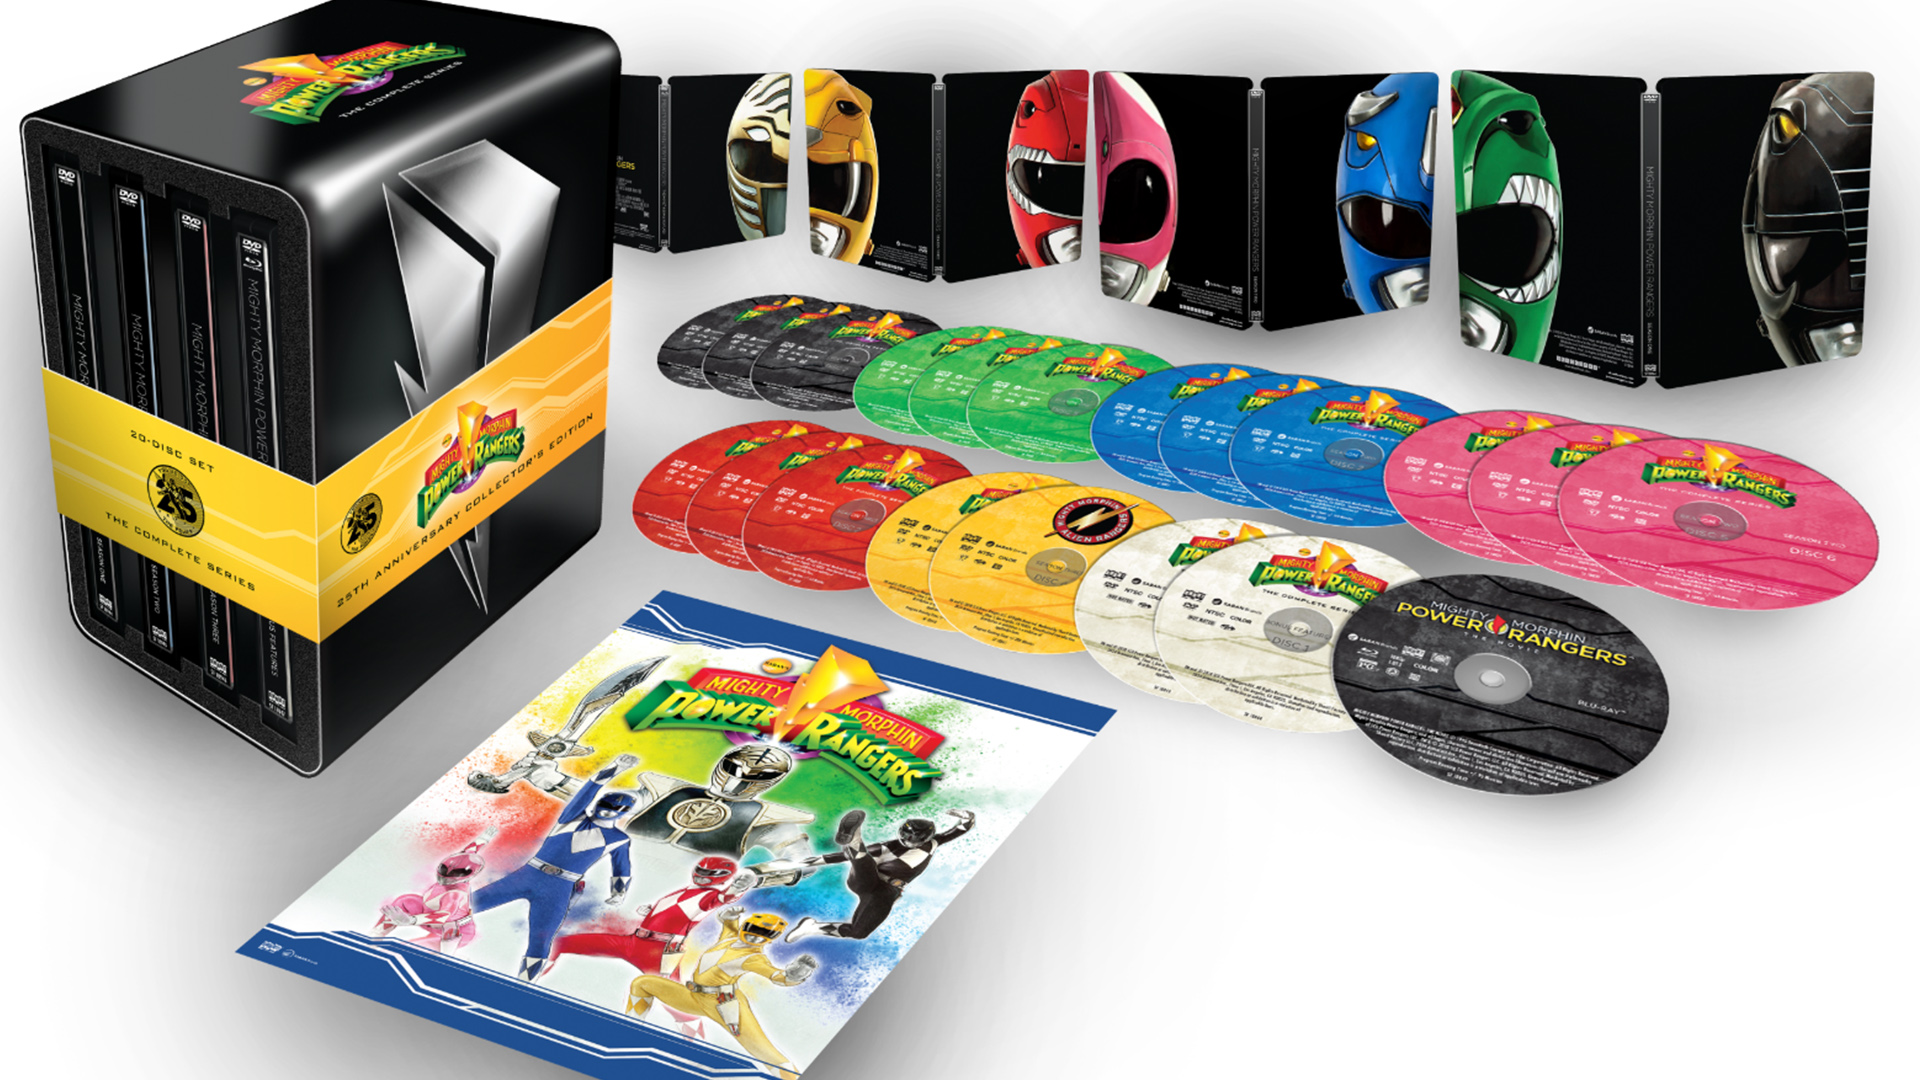 Mighty Morphin Power Rangers: The Complete Series [25th Anniversary